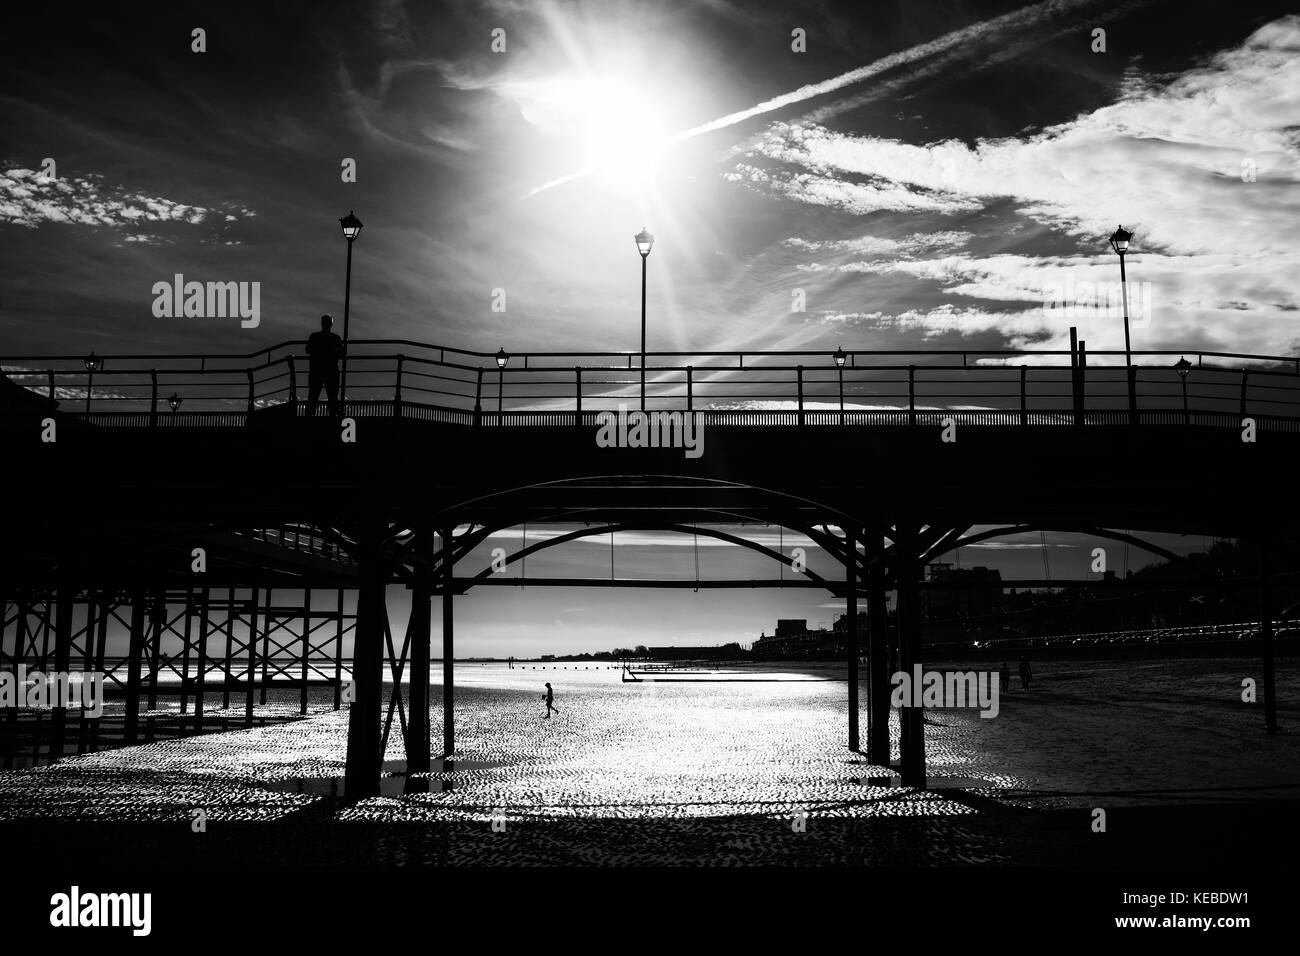 Shadowy adult figure stands on a silhouetted Cleethorpes Pier, a child with a bucket walks on wet sand in background. - Stock Image